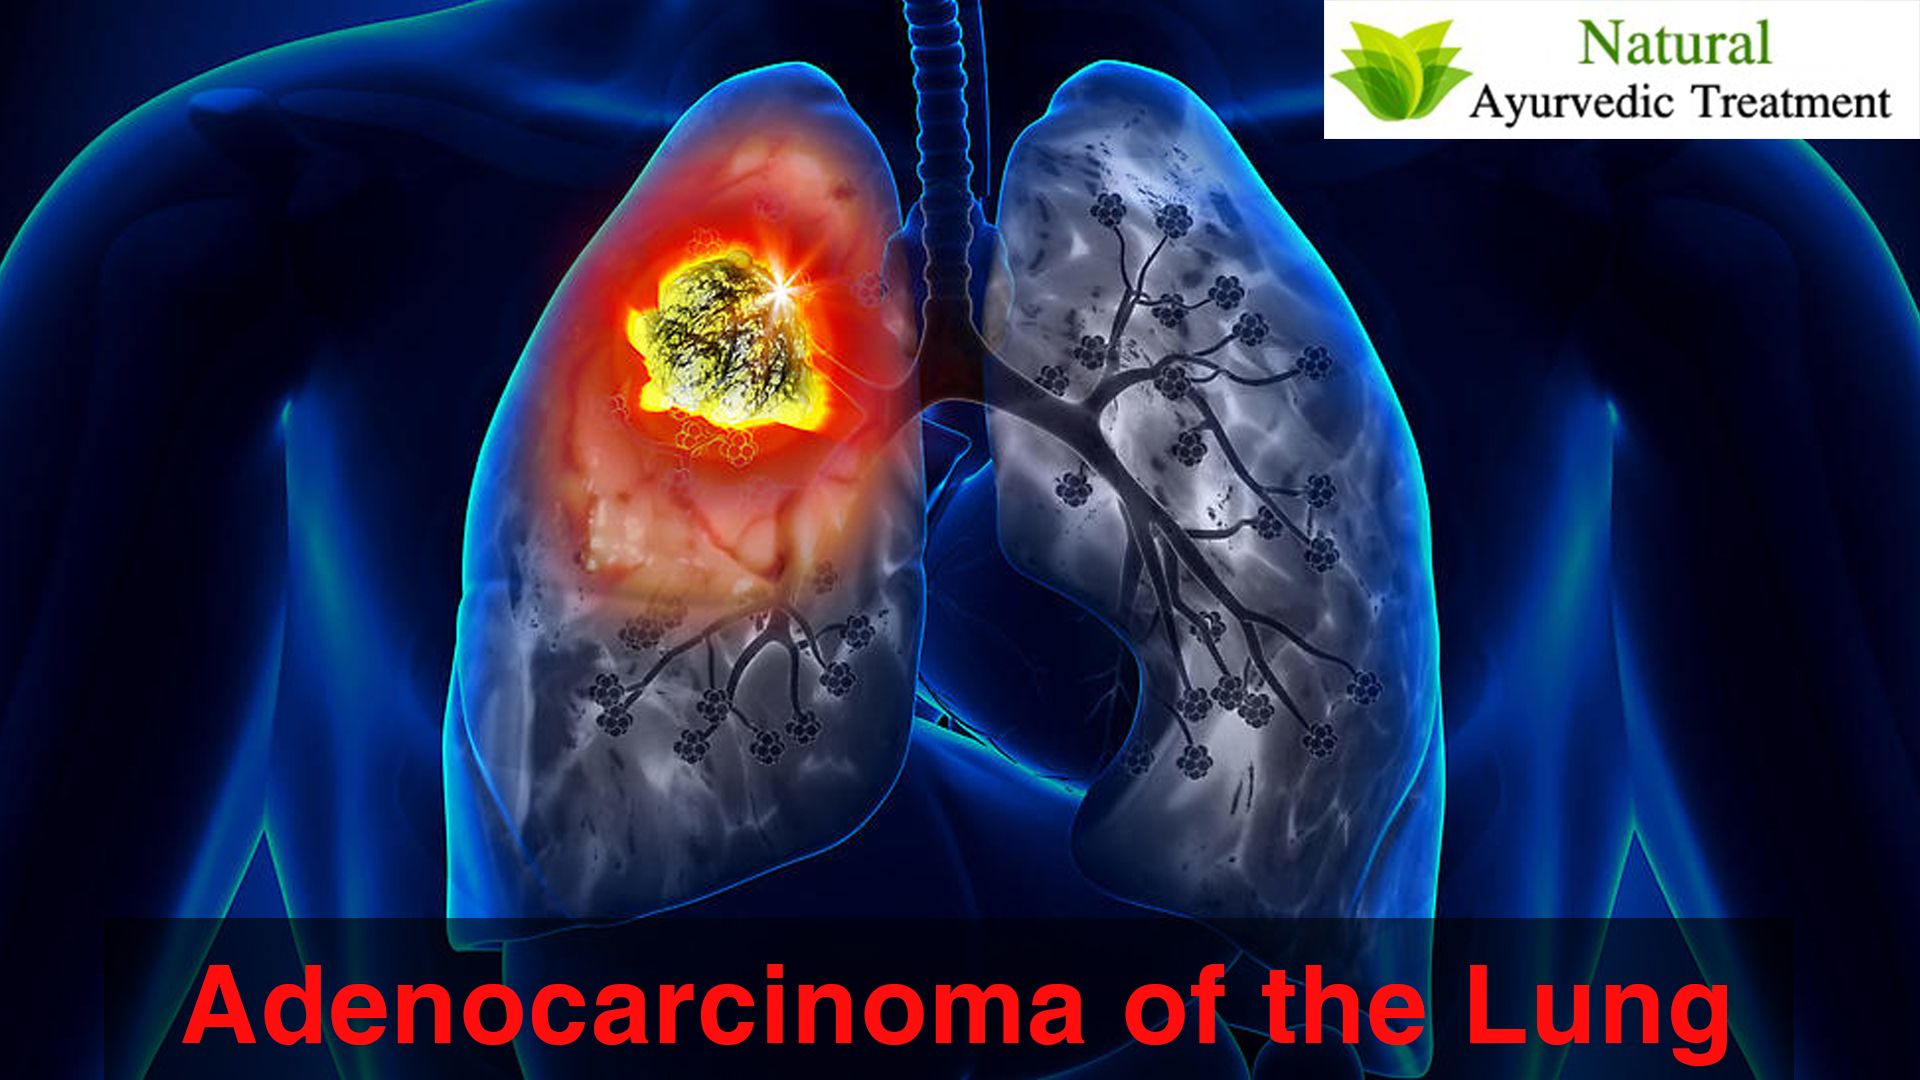 Ayurvedic Treatment for Adenocarcinoma of the Lung